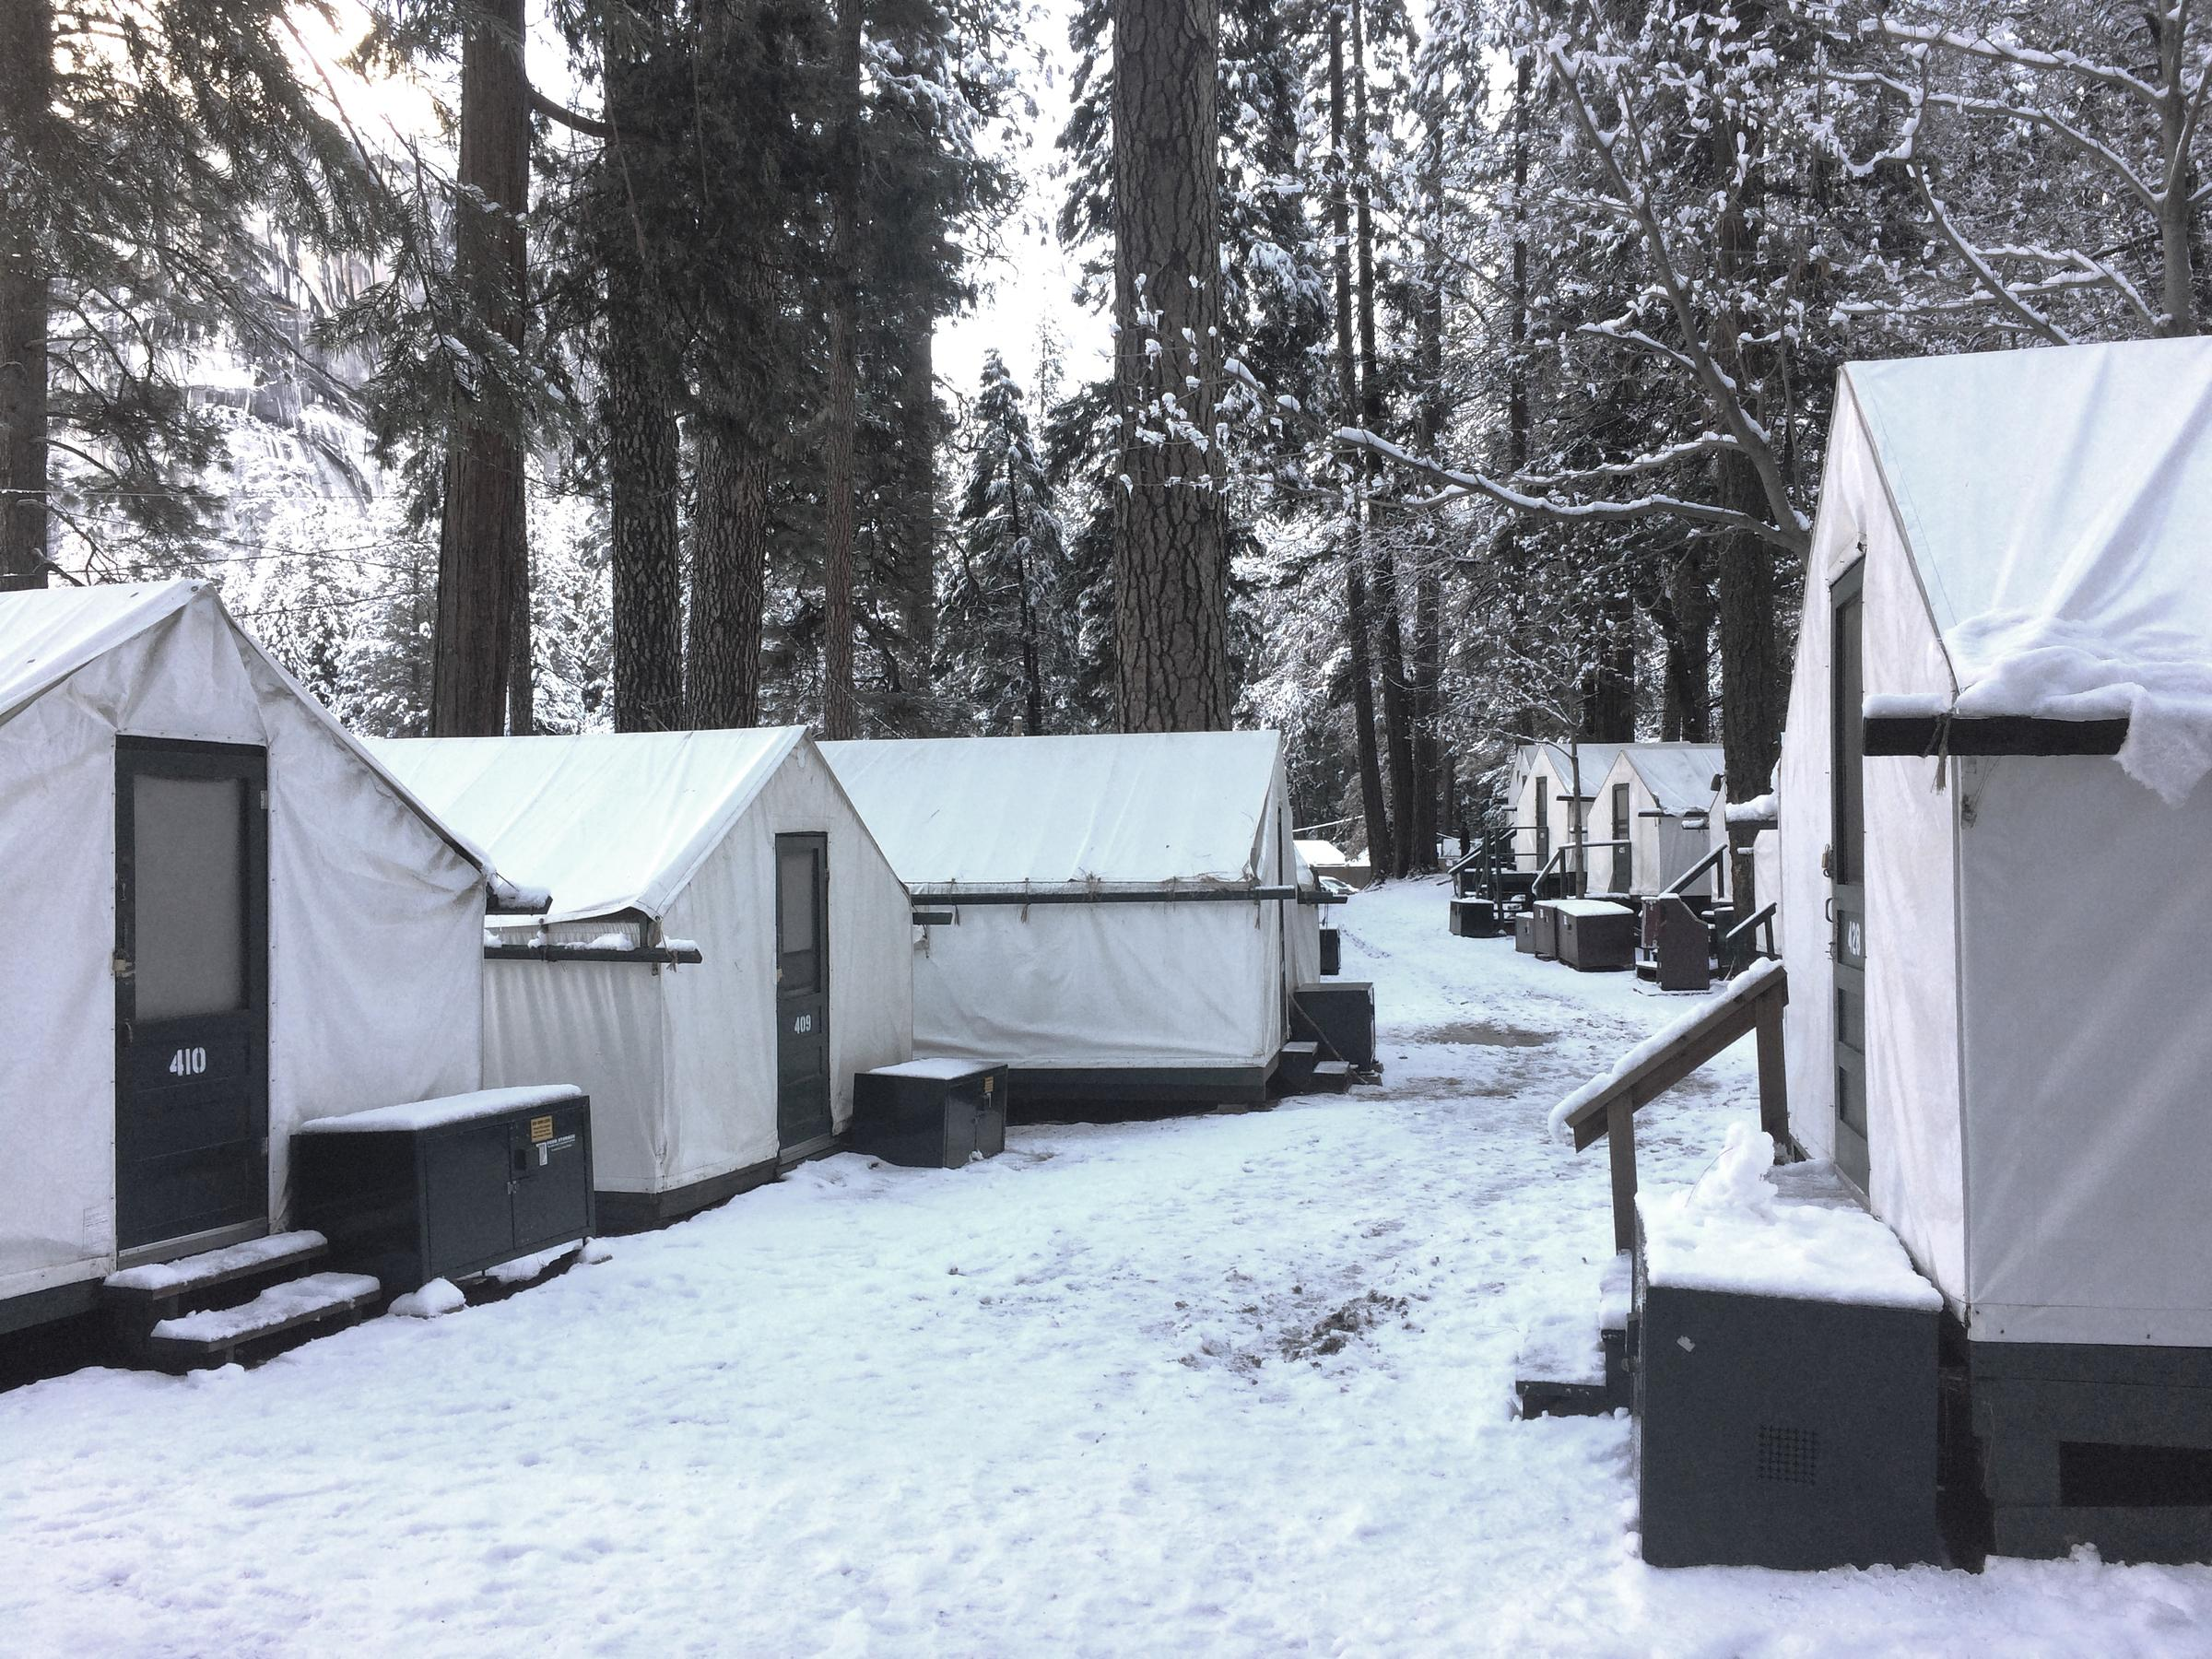 glamping evergreen fresh outside ca yosemite cabins clean rustic pin lodge with just